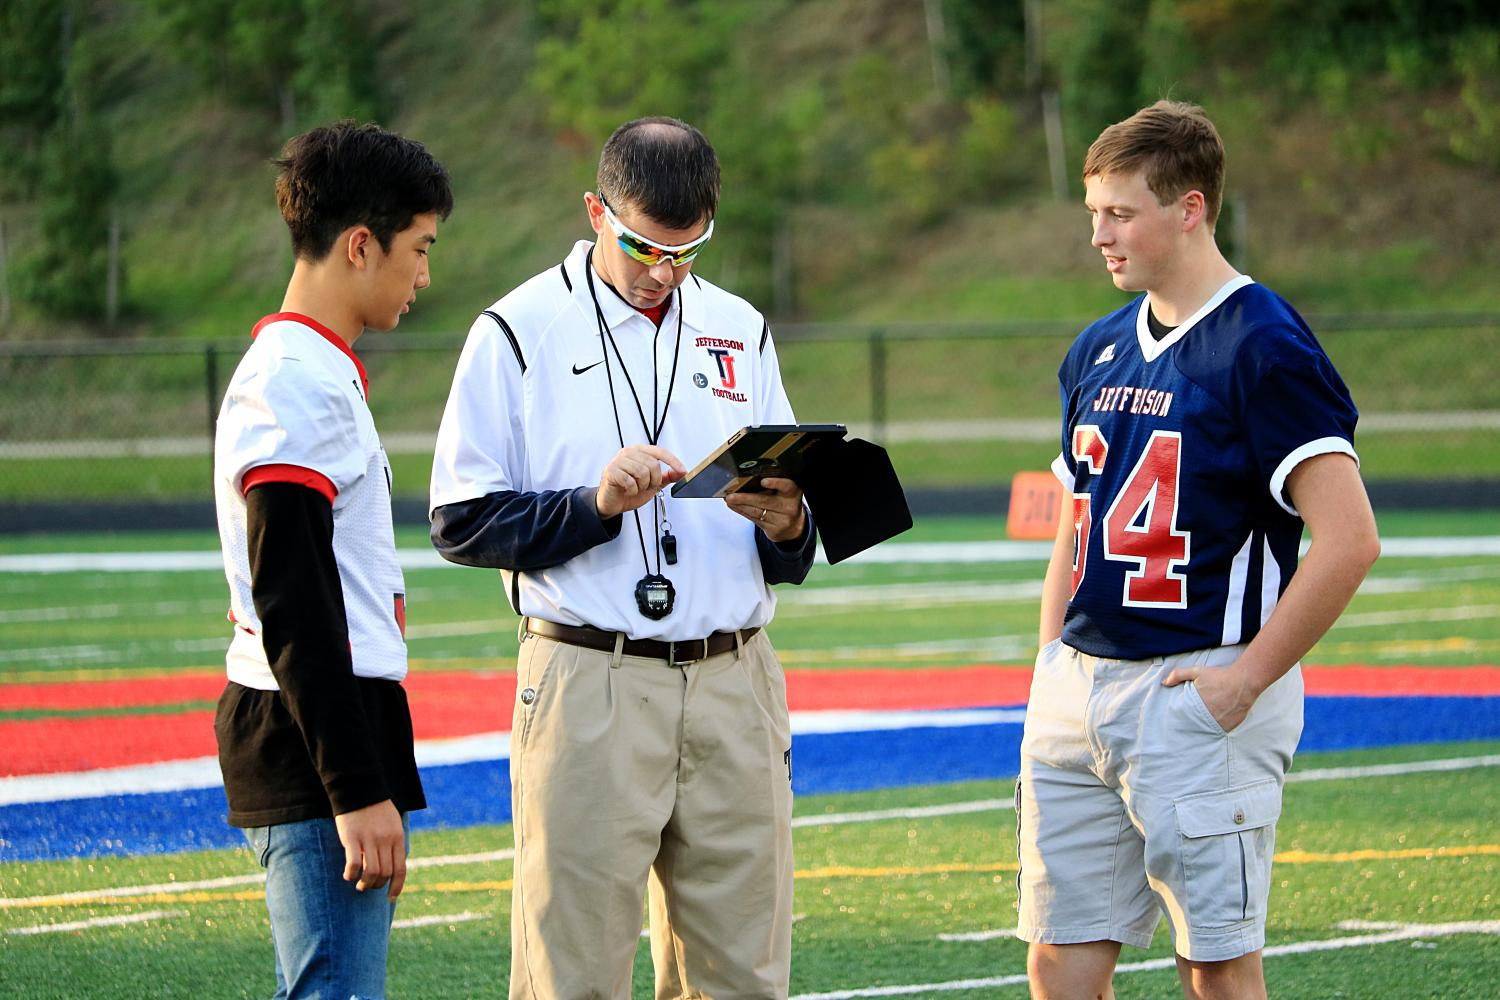 From left to right: Junior Jun Chong and Senior John Erskine discuss plans with teacher and football coach Michael Auerbach before the game starts.